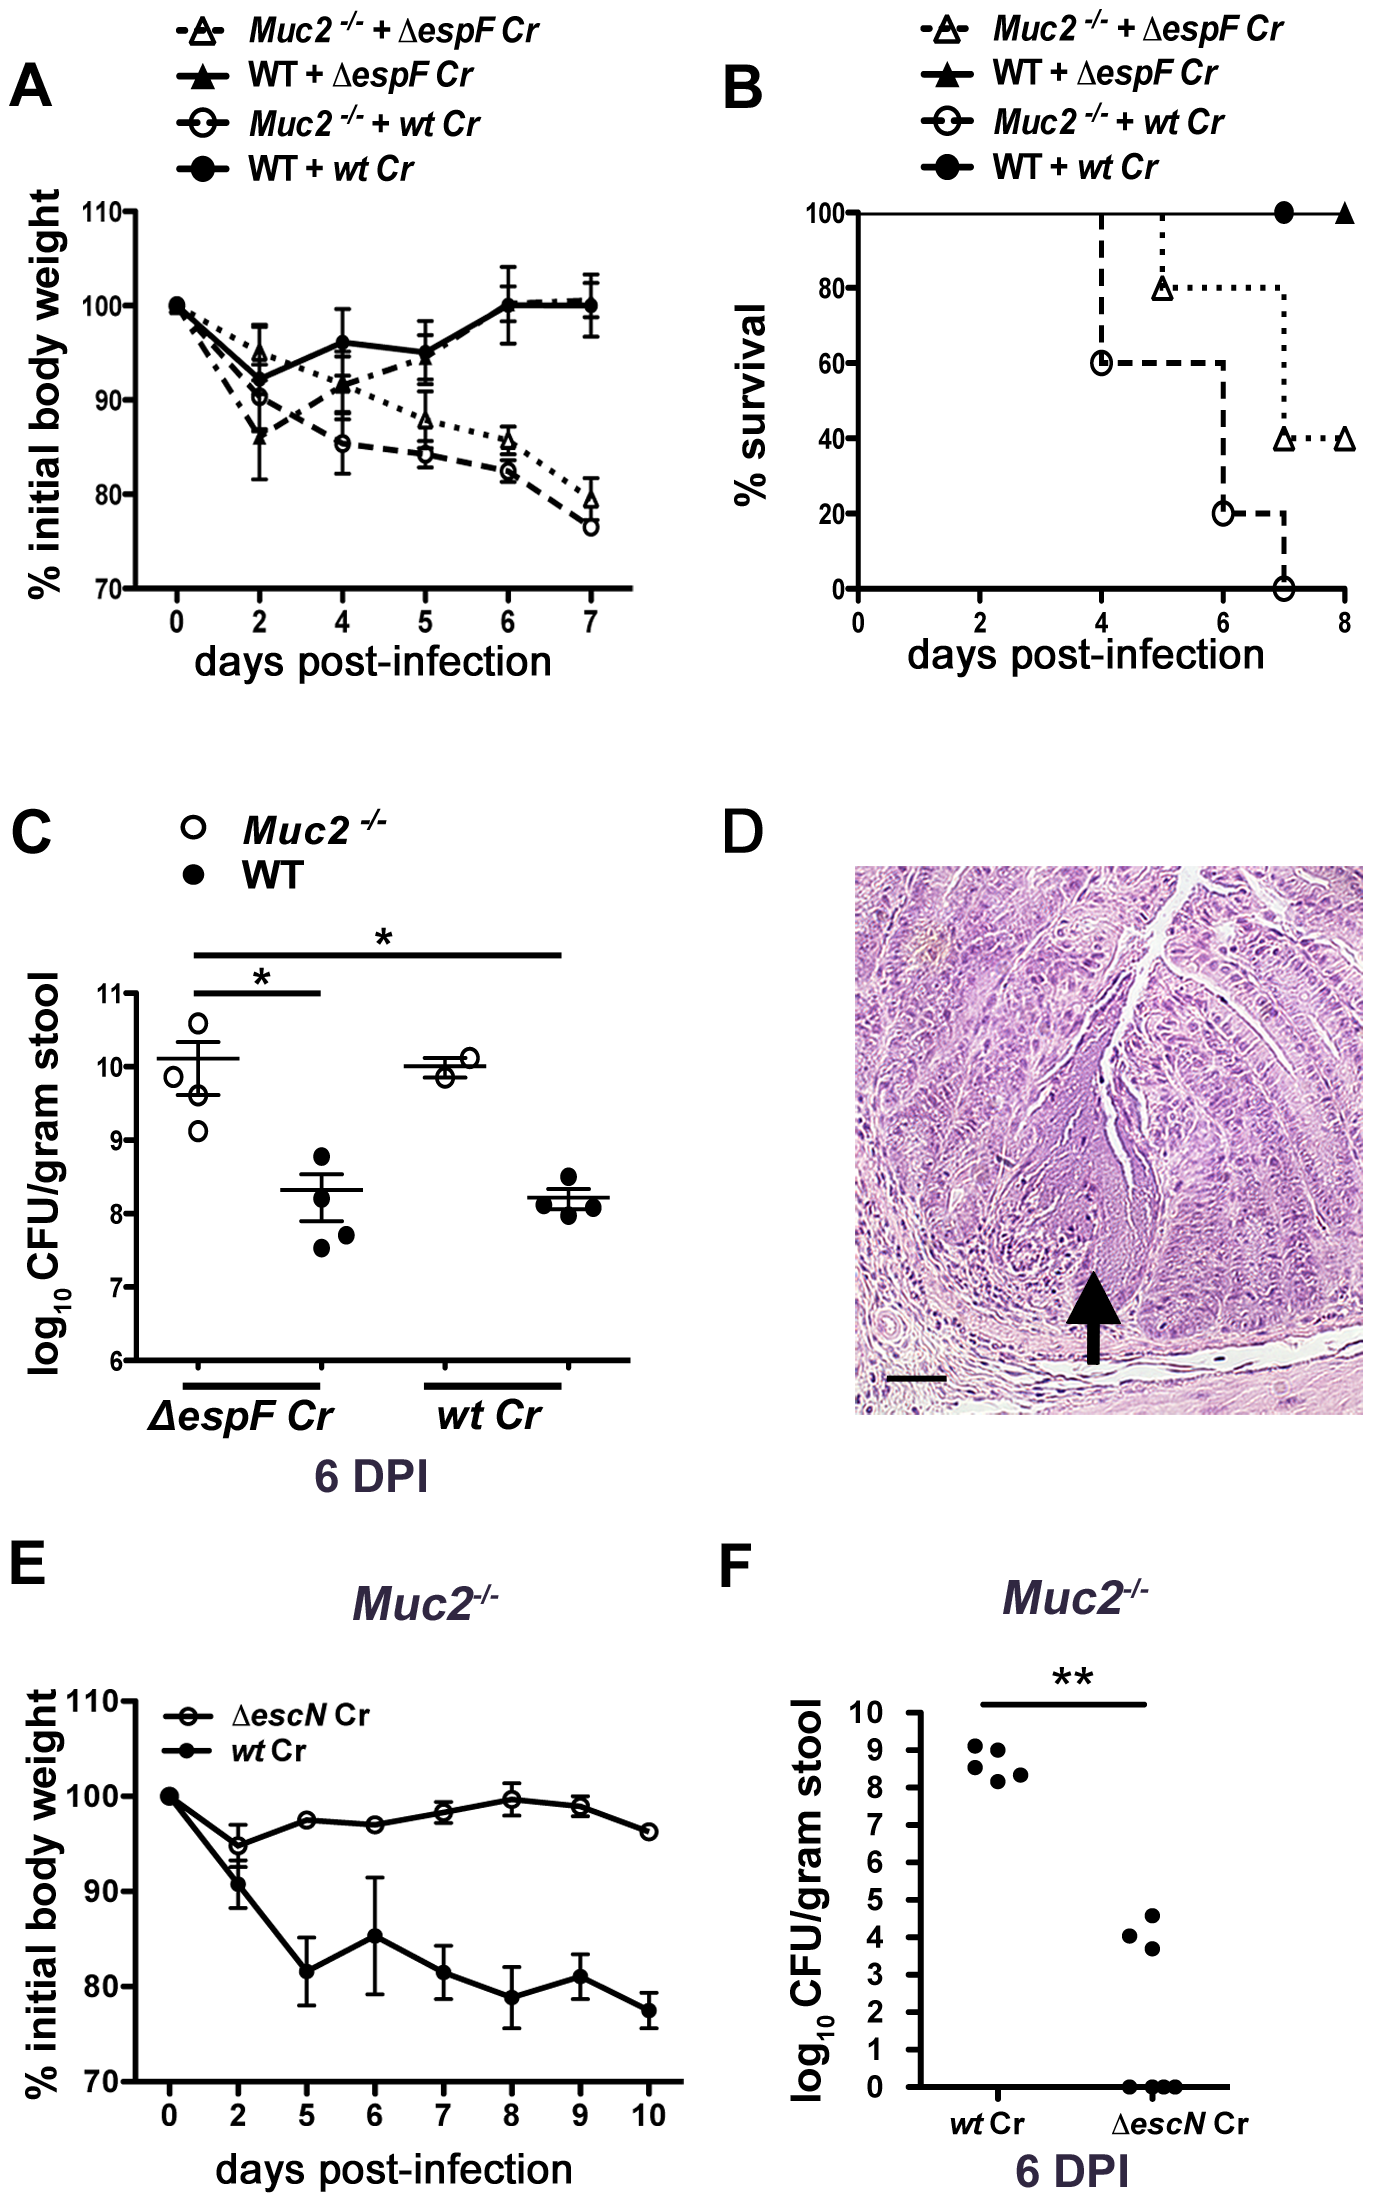 Muc2 deficiency renders mice more susceptible to attenuated strains, but susceptibility is T3SS dependent.